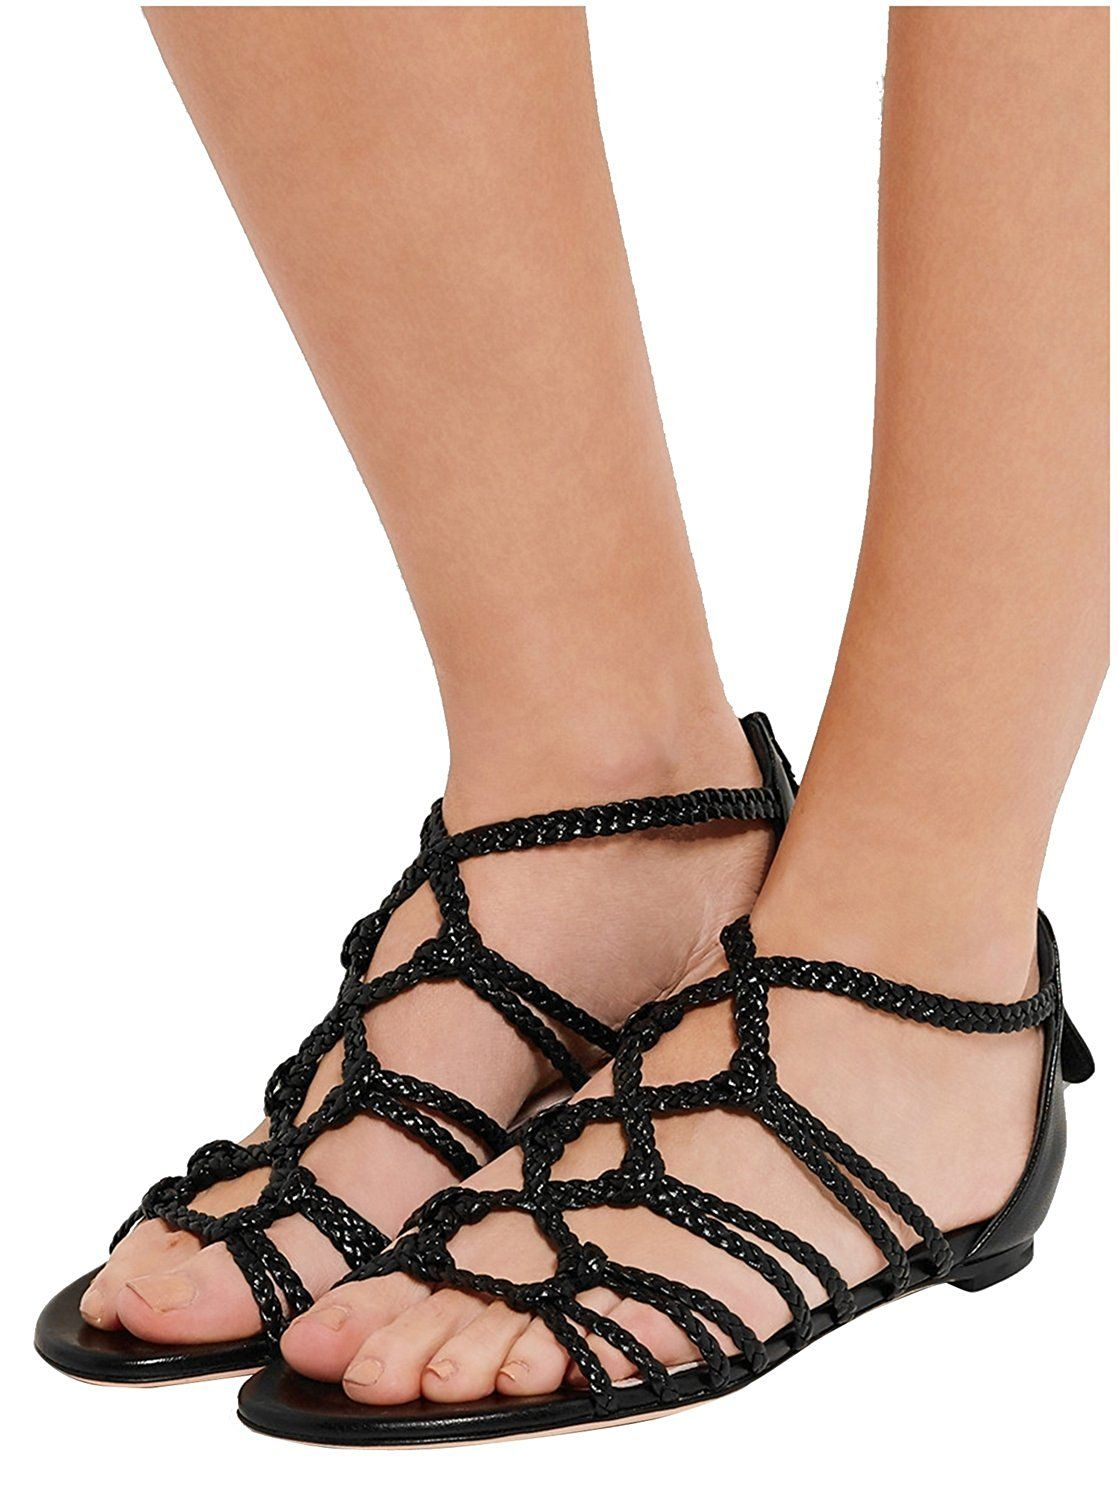 257e5606faa Kevin Fashion Women s Rope Strap PU Leather Summer Beach Walking Flats  Sandals   Details can be found by clicking on the image. (This is an Amazon  affiliate ...